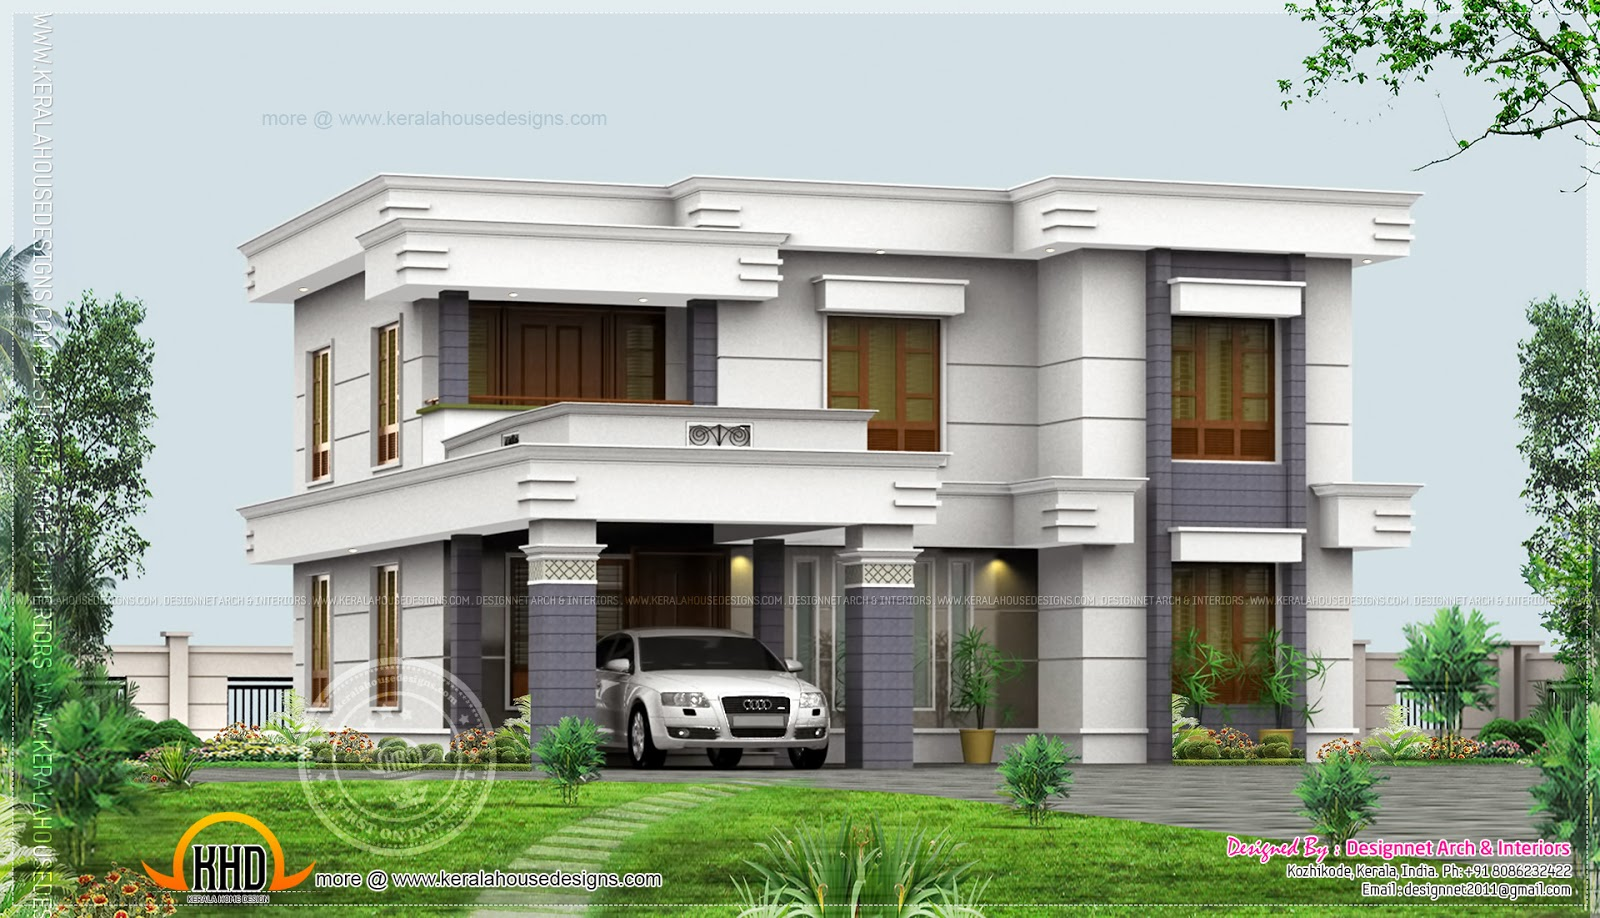 4 bedroom flat roof design in 2500 kerala home for 2500 sq ft house plans in kerala